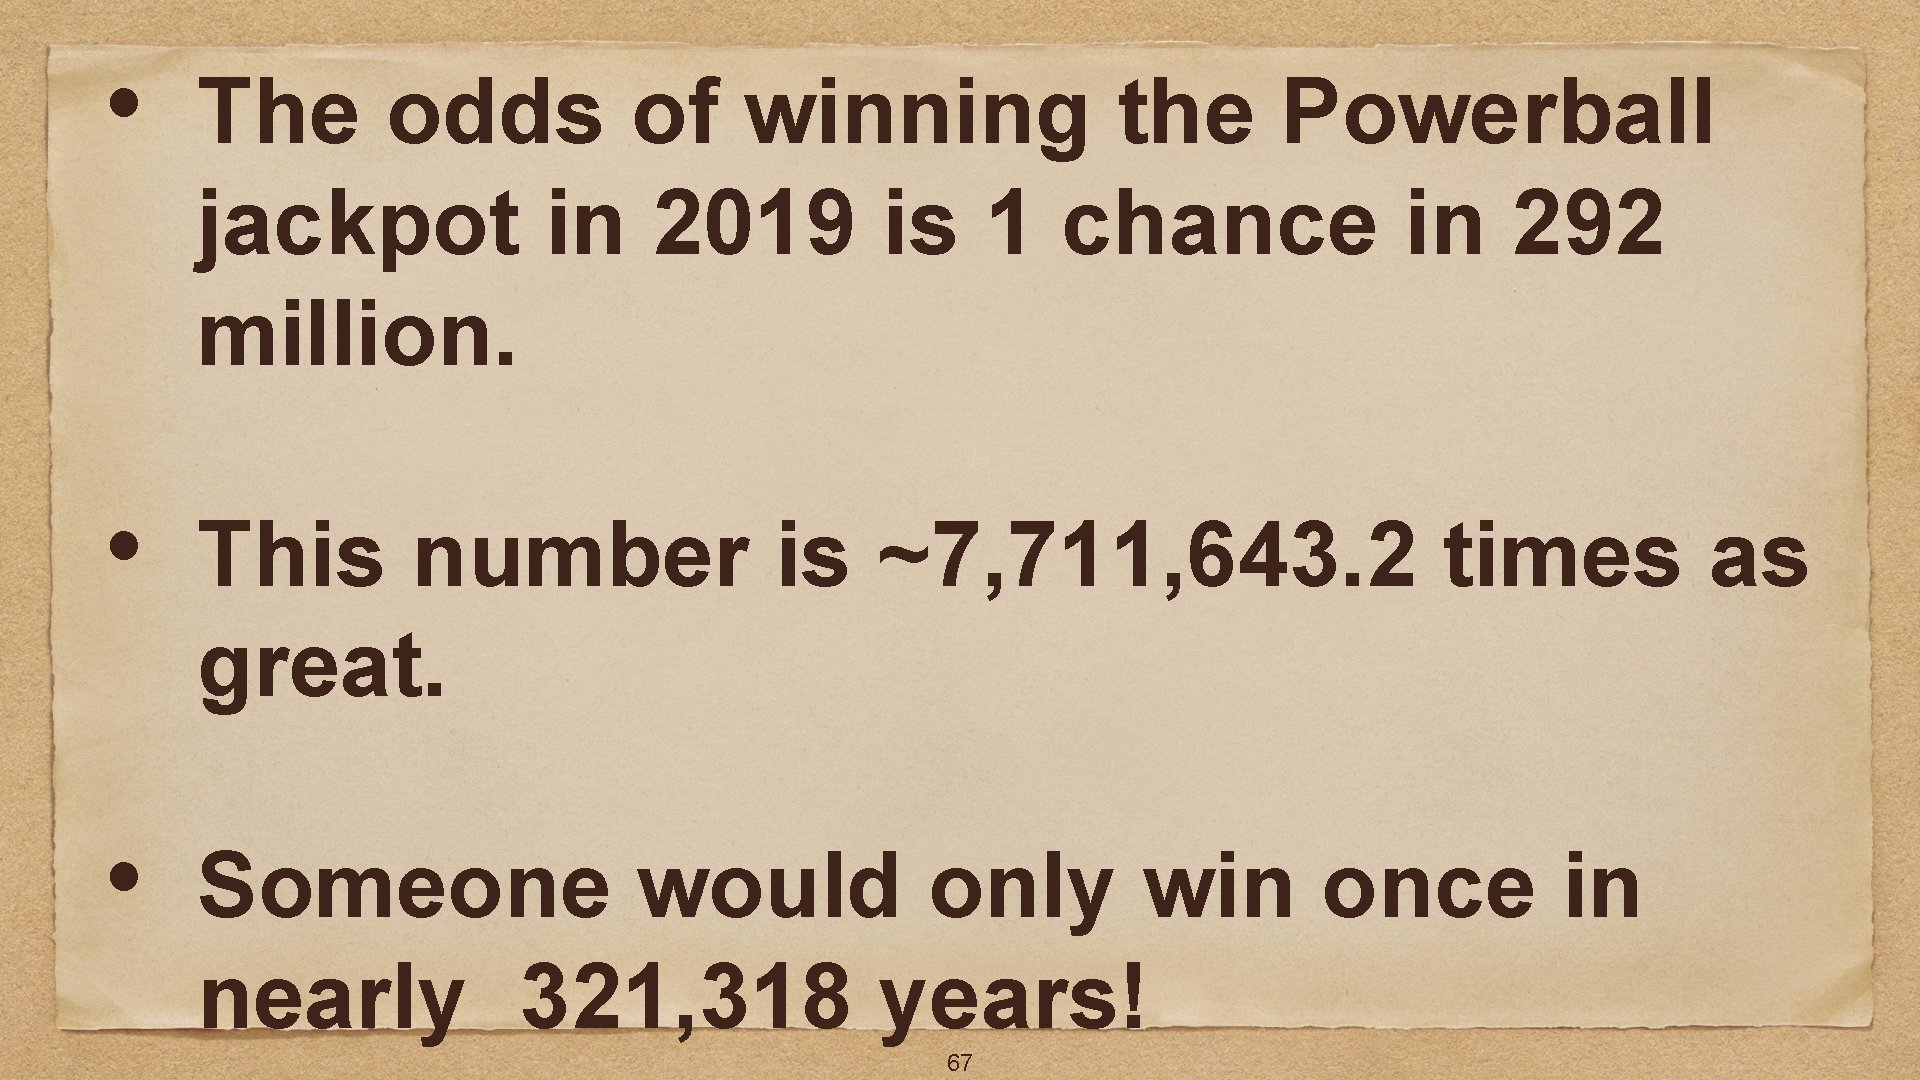 • The odds of winning the Powerball jackpot in 2019 is 1 chance